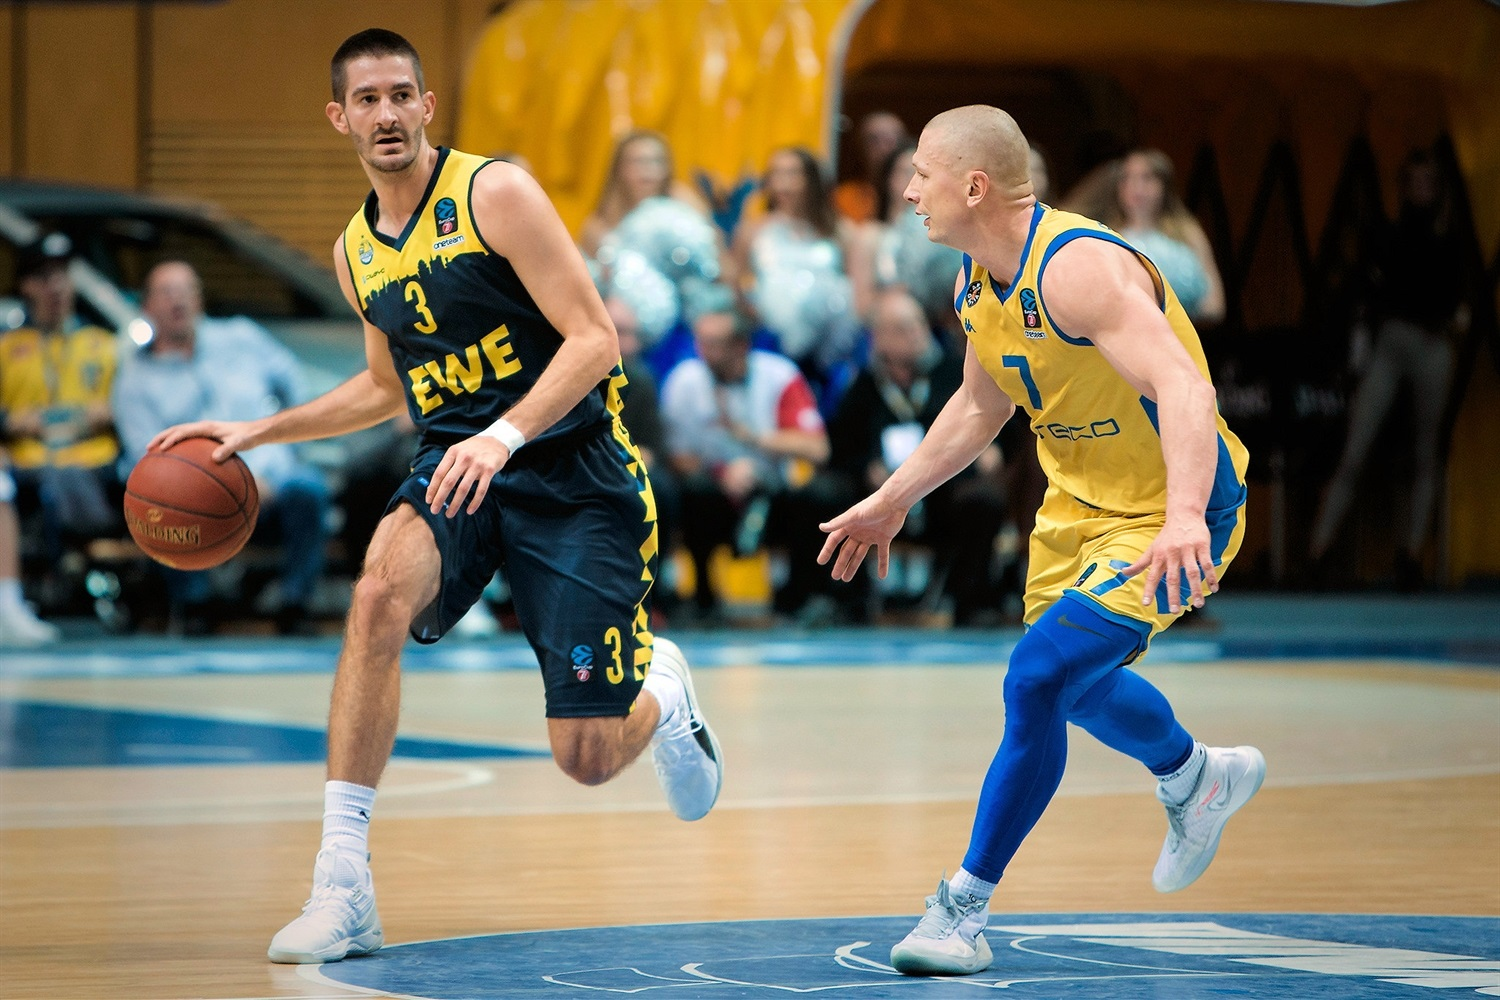 Braydon Hobbs - EWE Baskets Oldenburg (photo Arka) - EC19